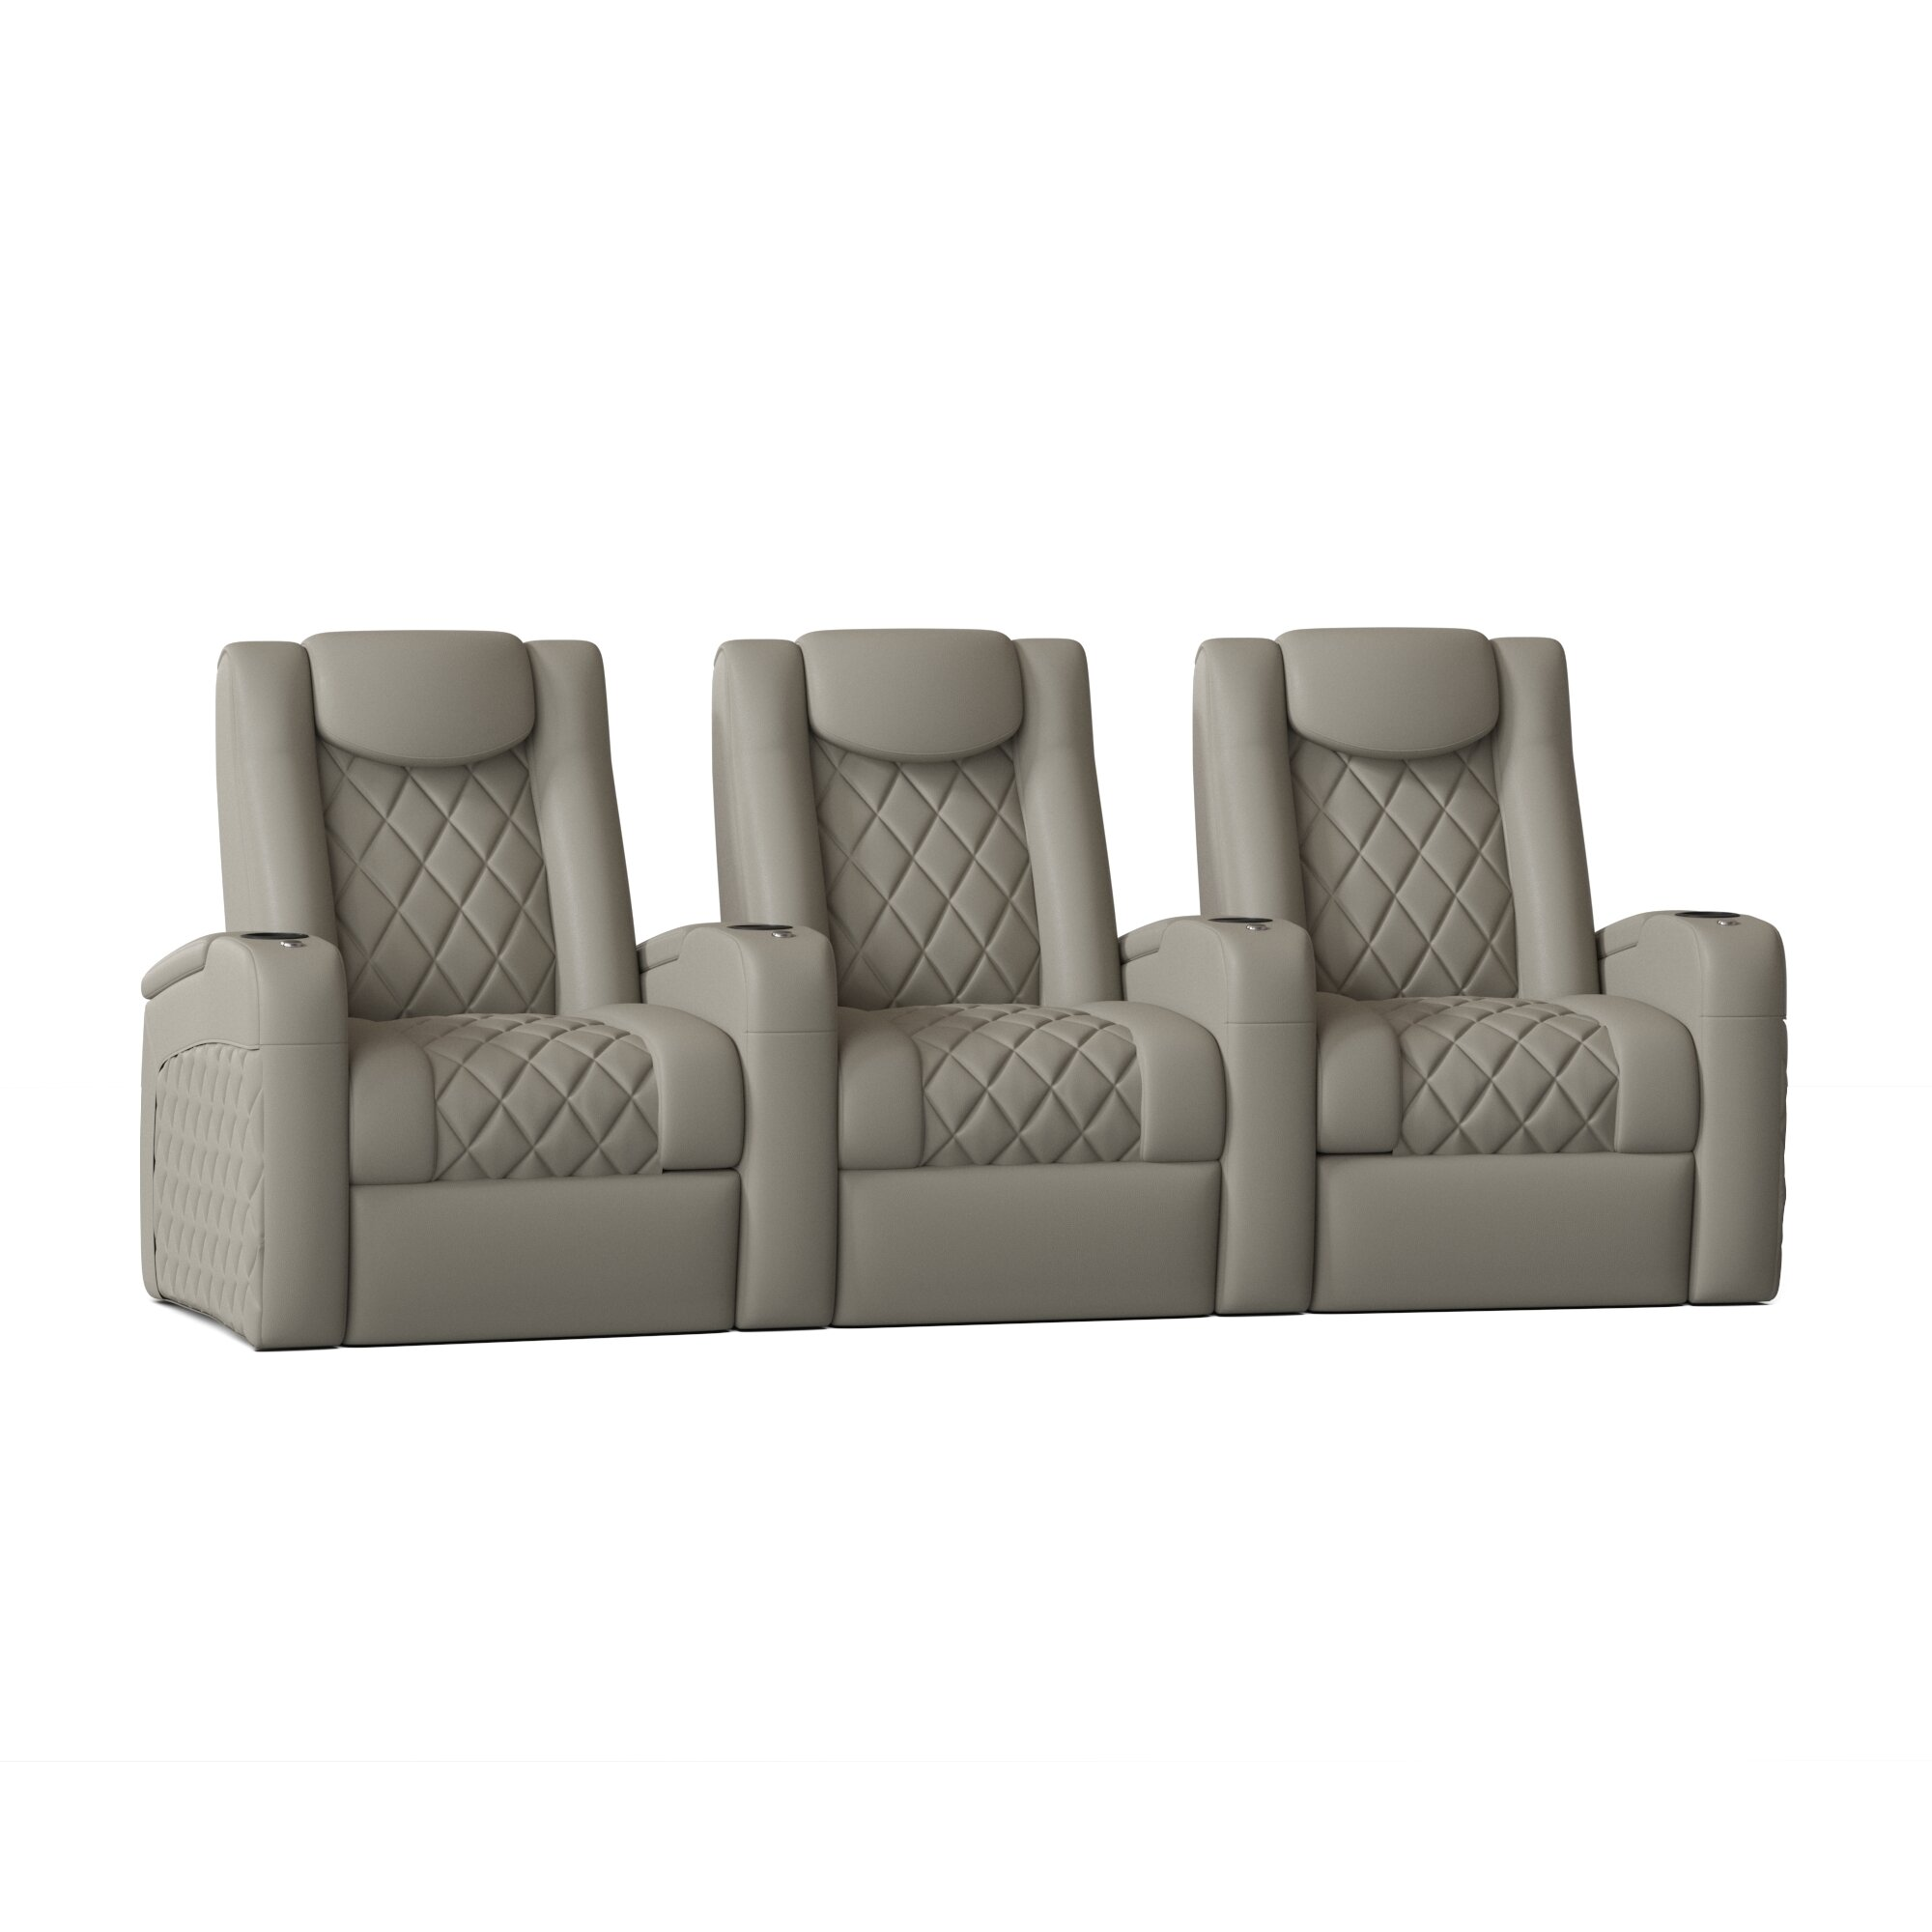 Red Barrel Studio Azure Recliner Home Theater Row Seating Row Of 3 Wayfair